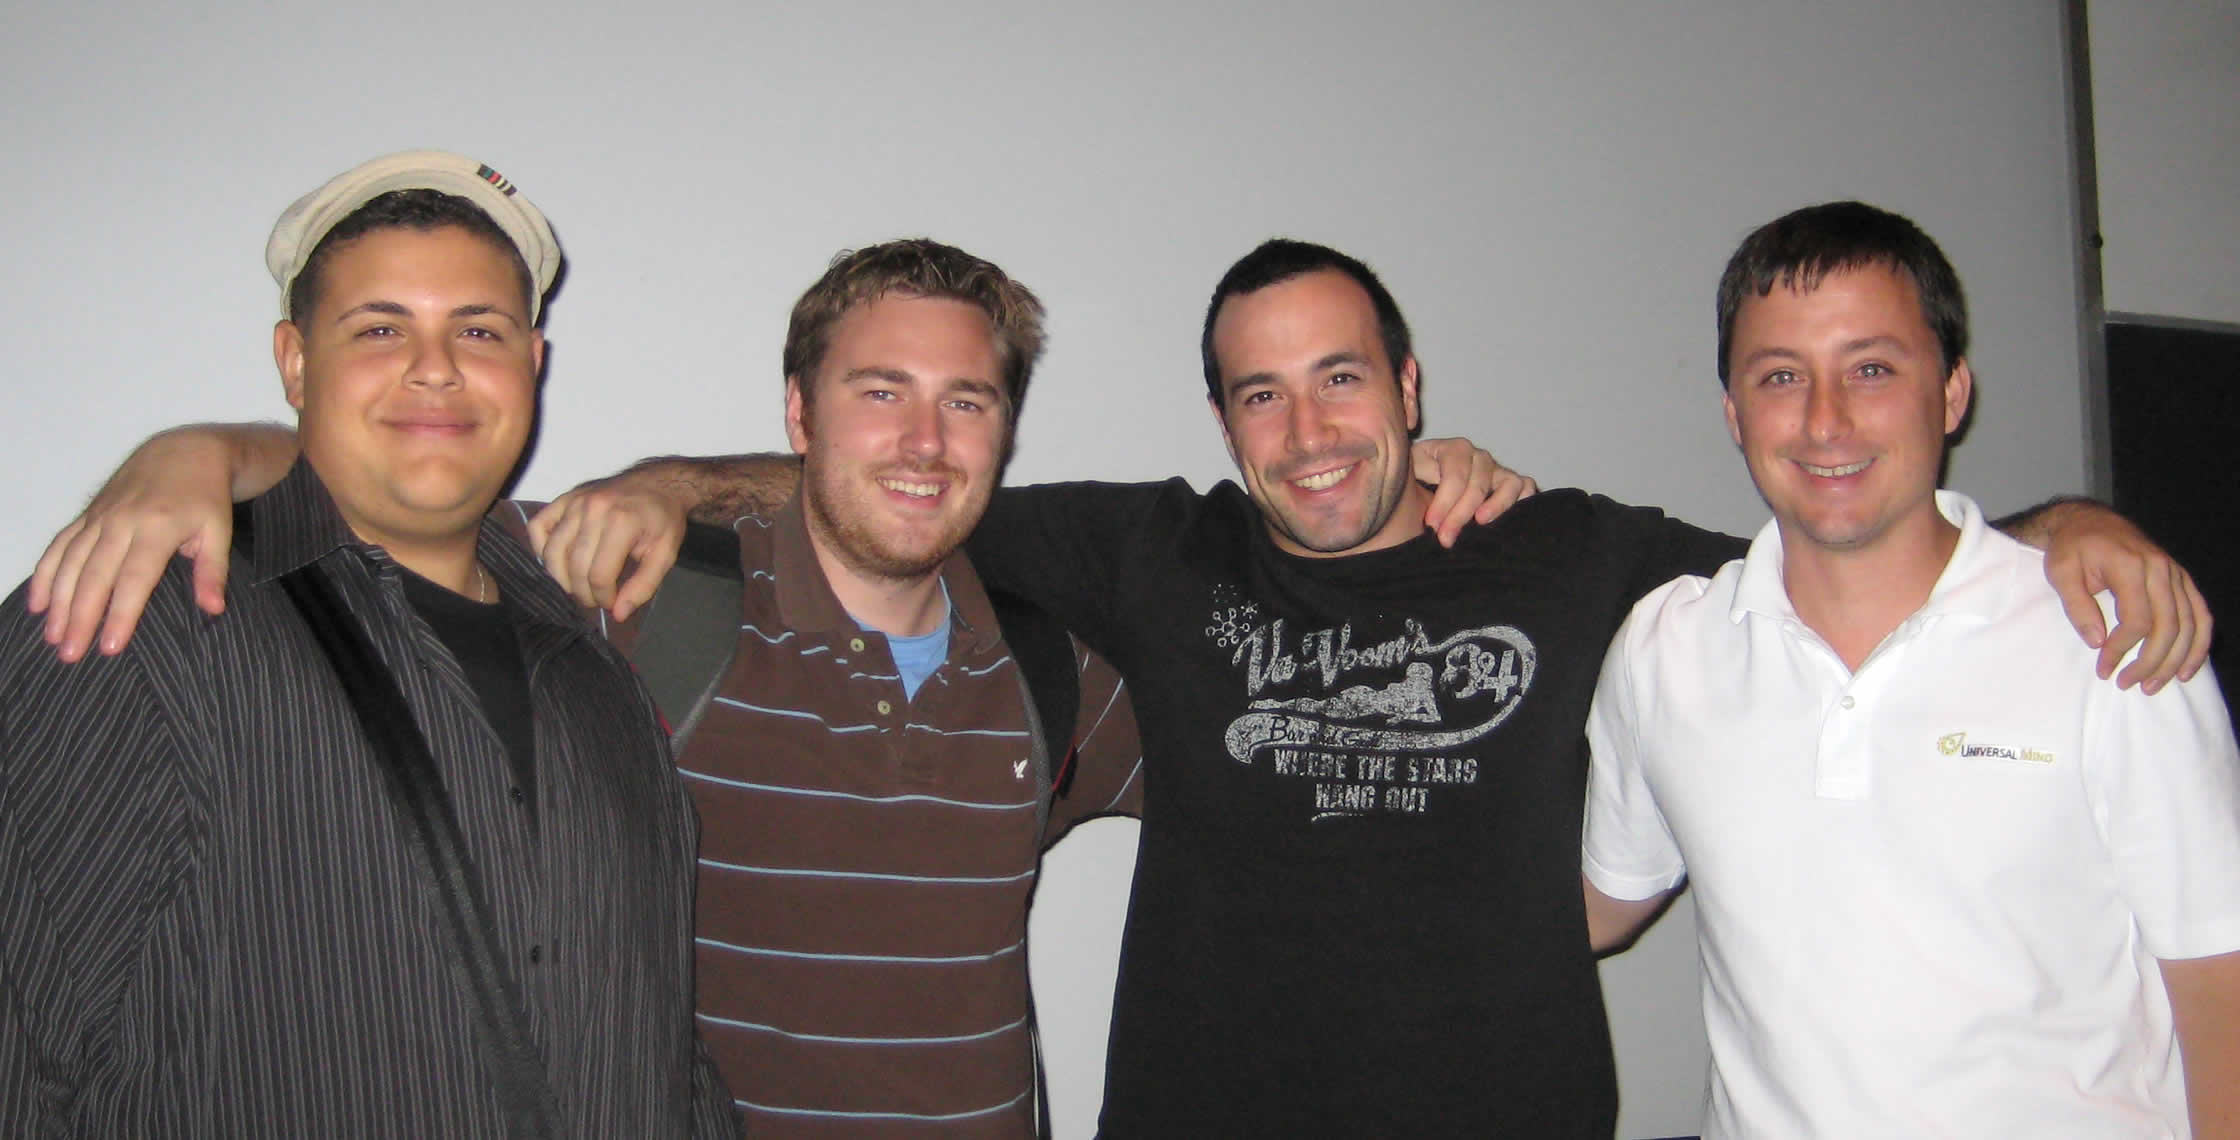 Ben Nadel at the New York ColdFusion User Group (Jul. 2008) with: Clark Valberg and Simon Free and Dan Wilson